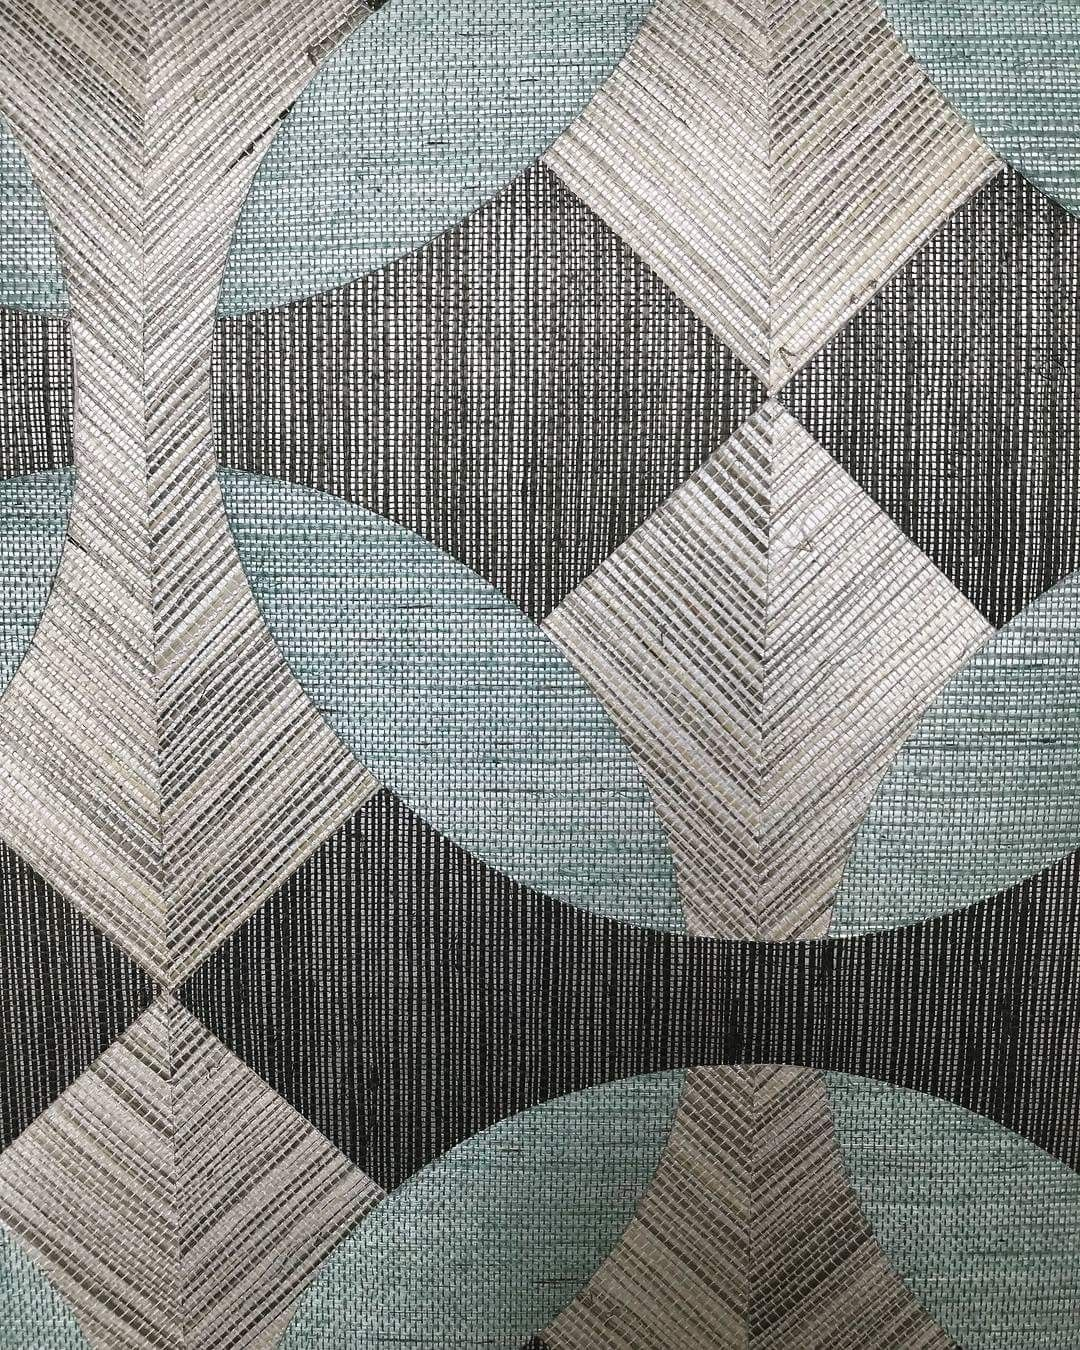 Bcd – Textured Geometric Textile Design, Ideas To Steel Throughout Recent Blended Fabric Secret Lovers Rendezvous Wall Hangings (View 2 of 20)